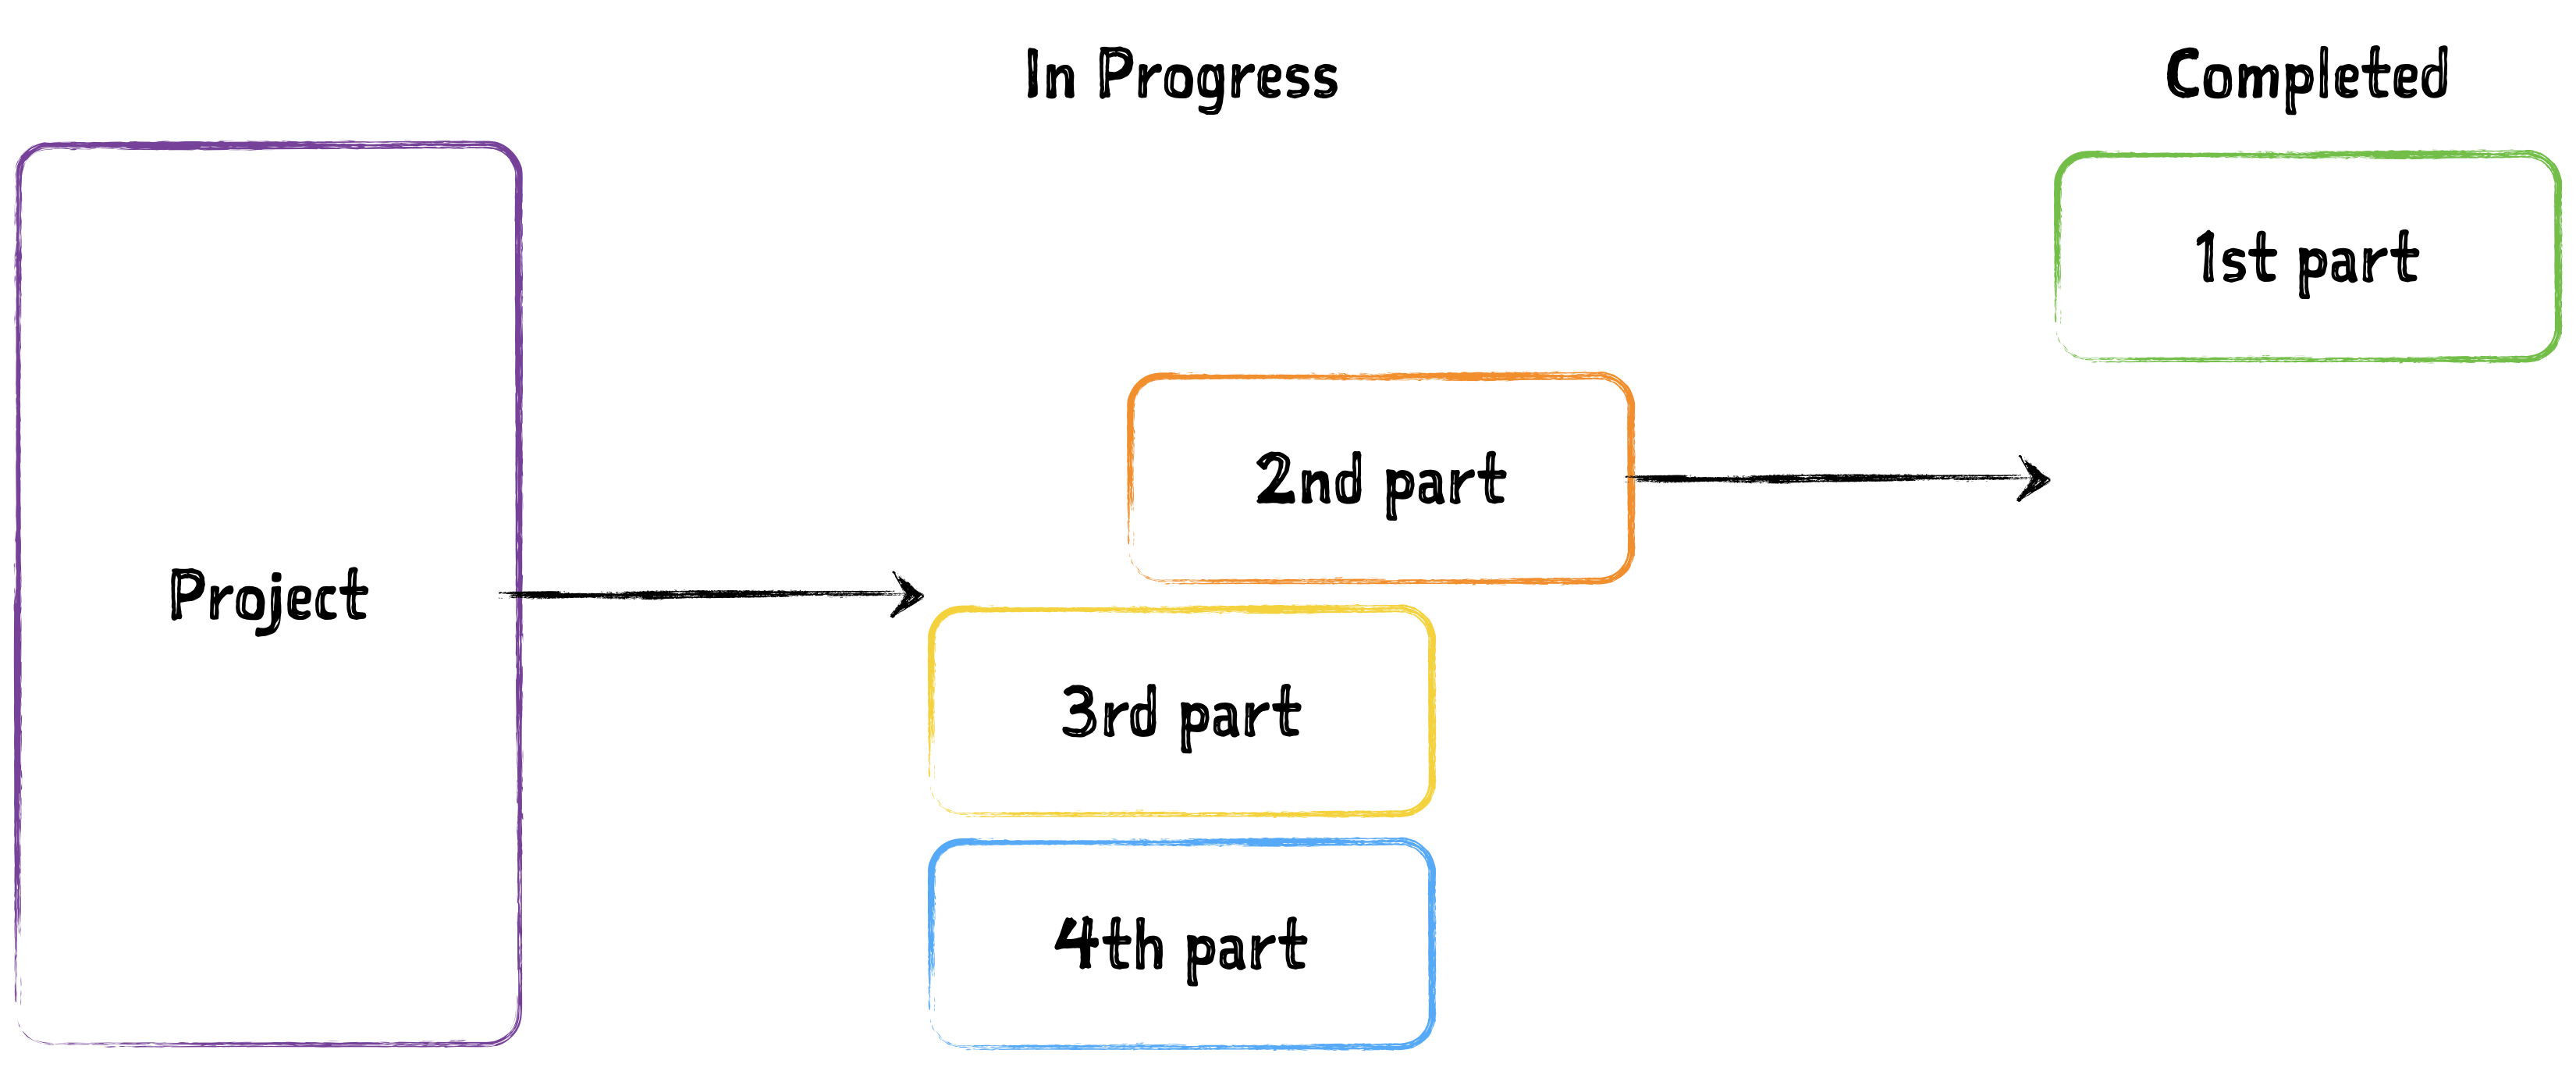 Establishing a Project Starting Date-Using Project Management Software